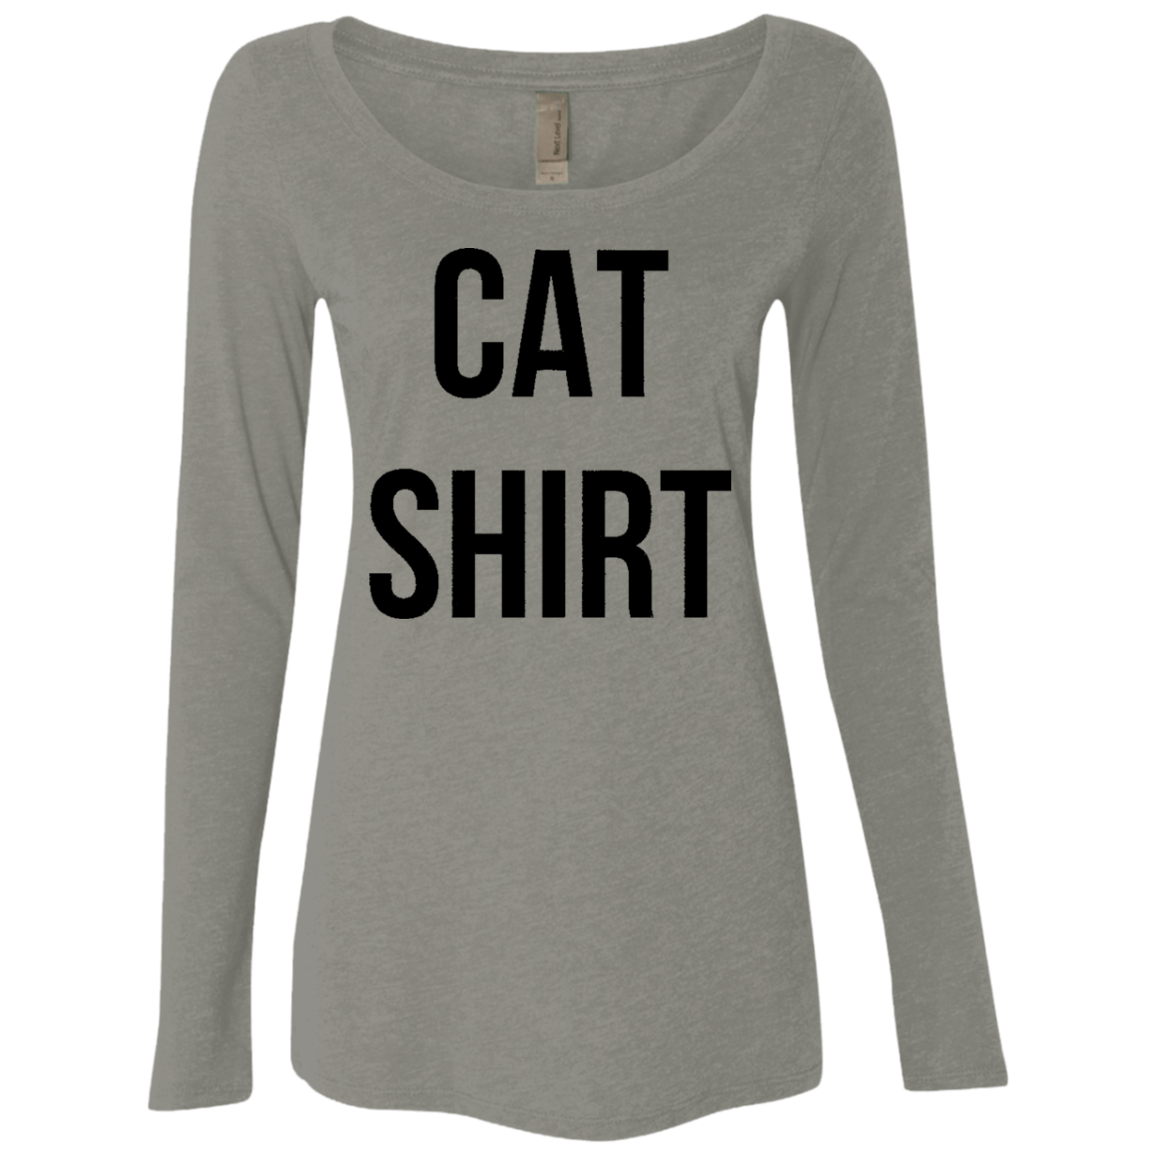 Cat Shirt Women's Long Sleeve Tee - Trendy Tees